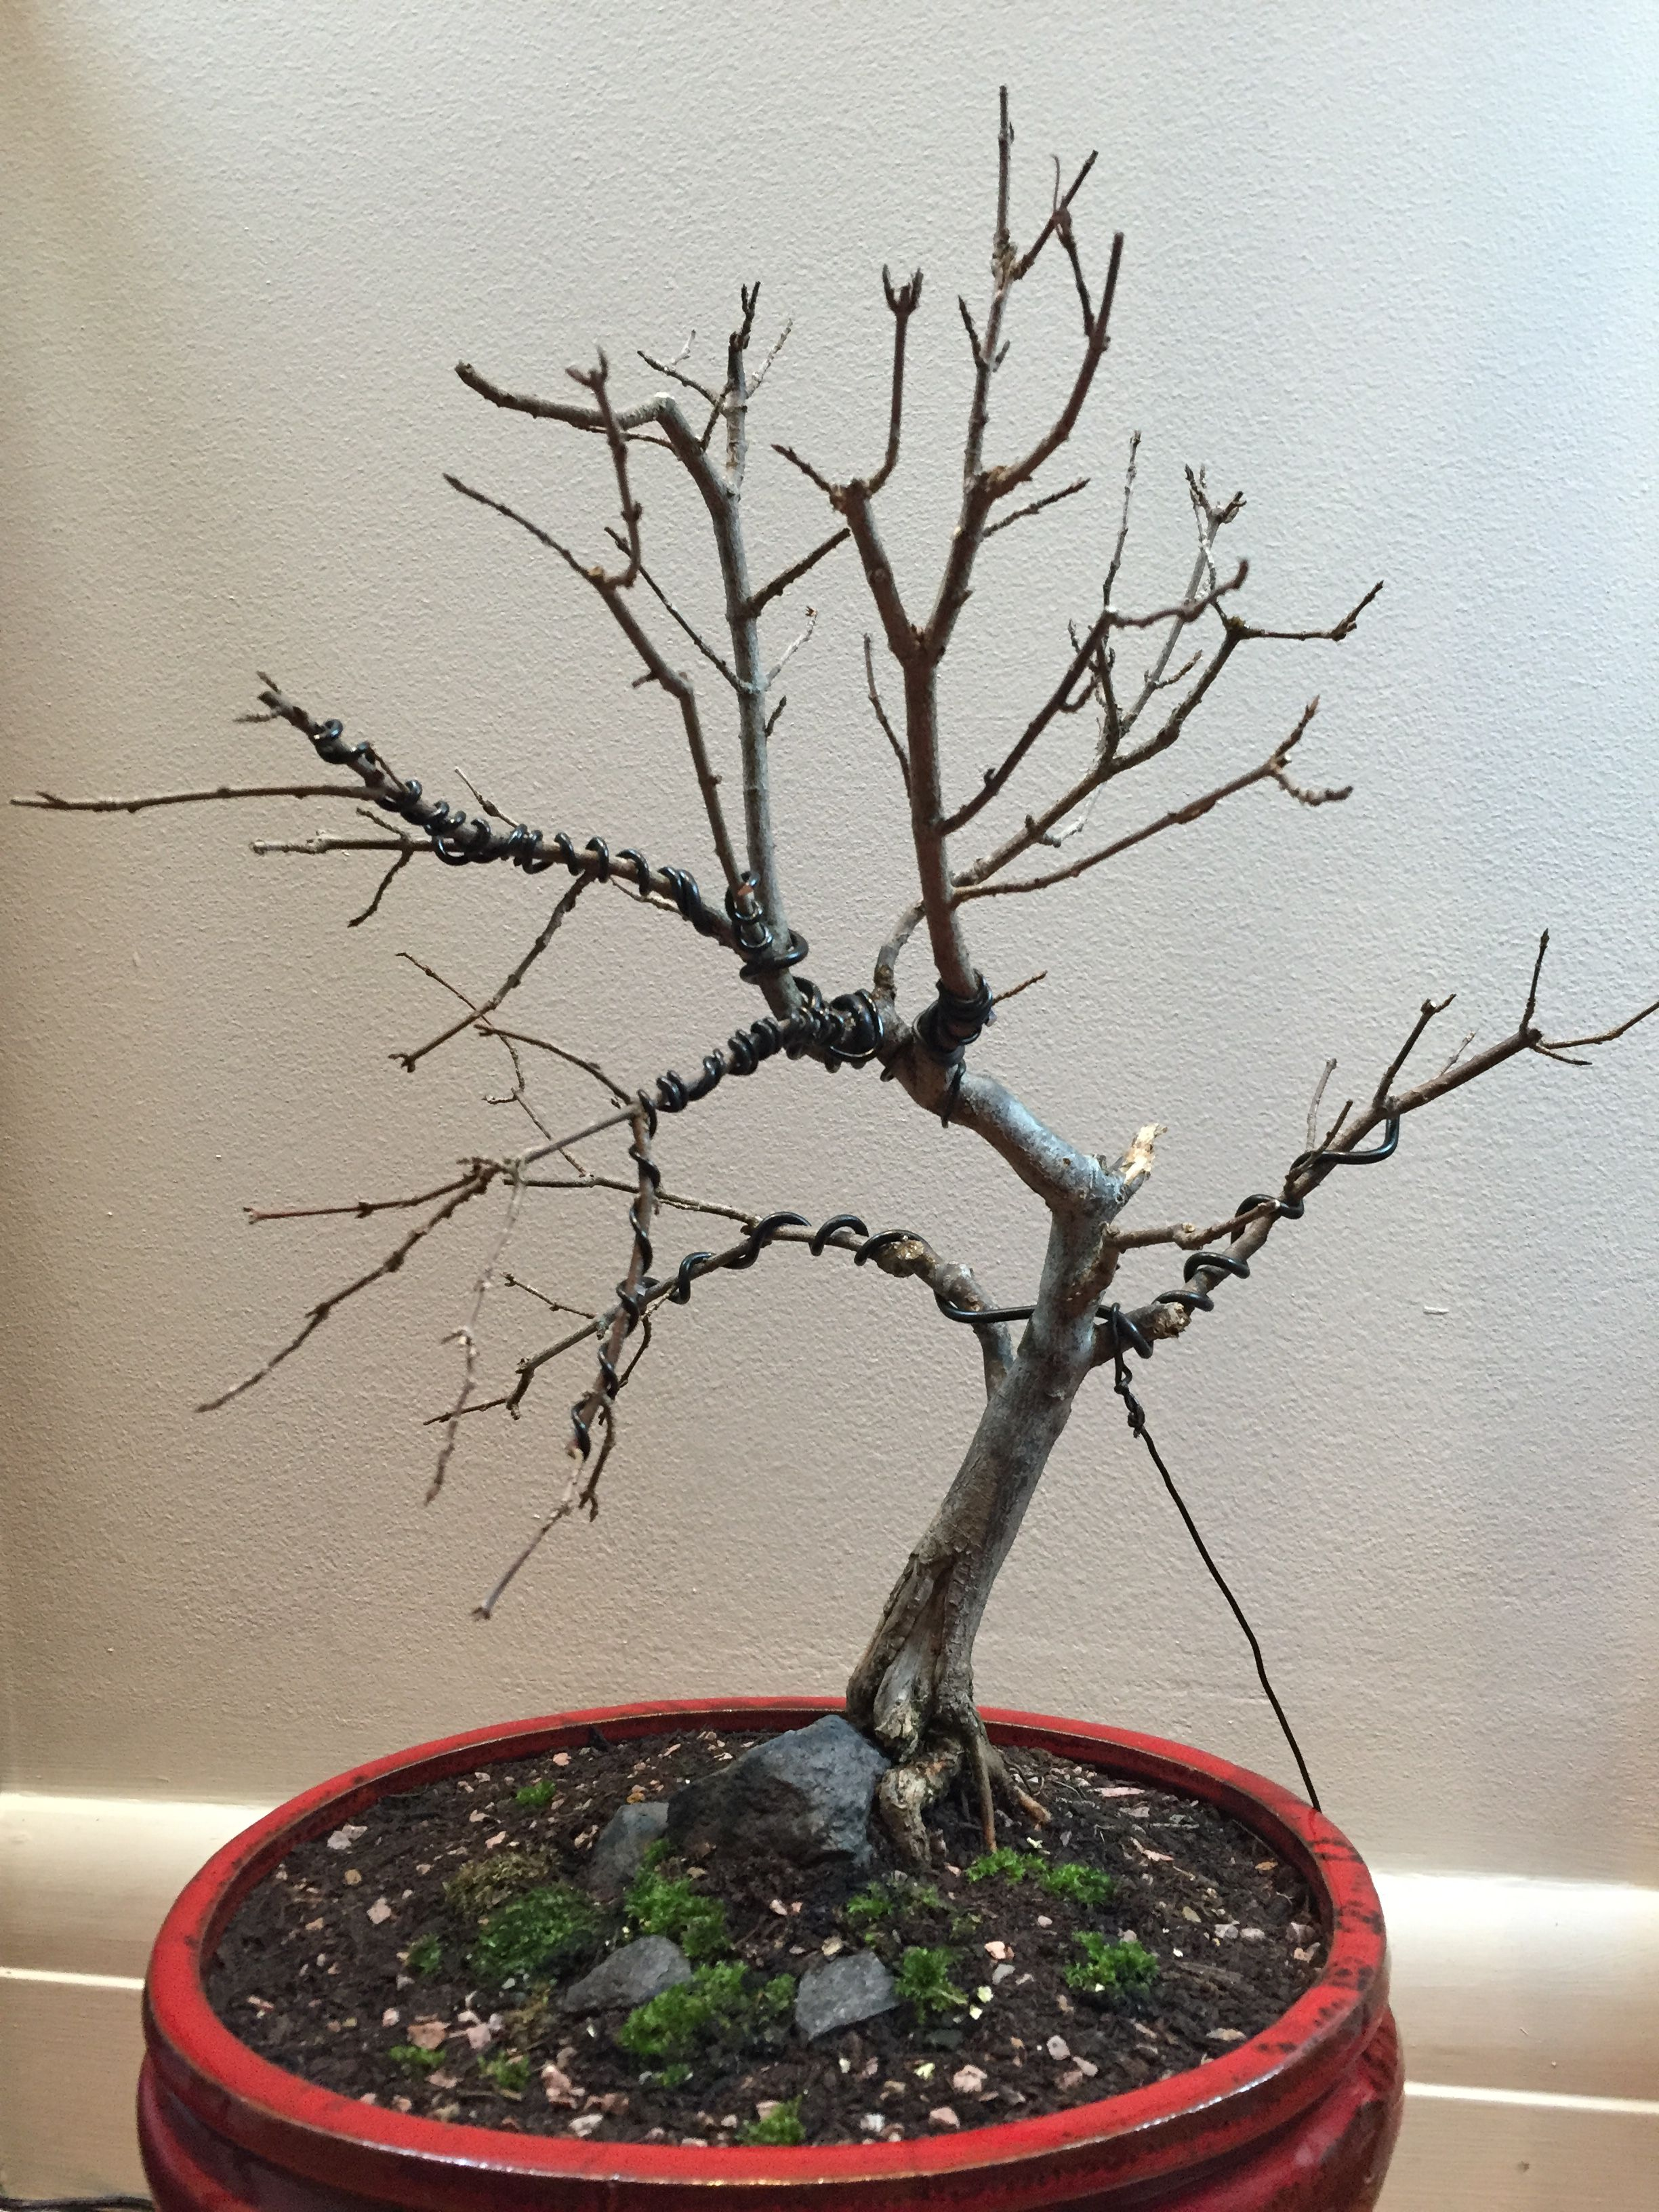 Awesome My Trident Maple First Pruning Wiring And Re Potting 09 06 2016 Wiring Digital Resources Cettecompassionincorg